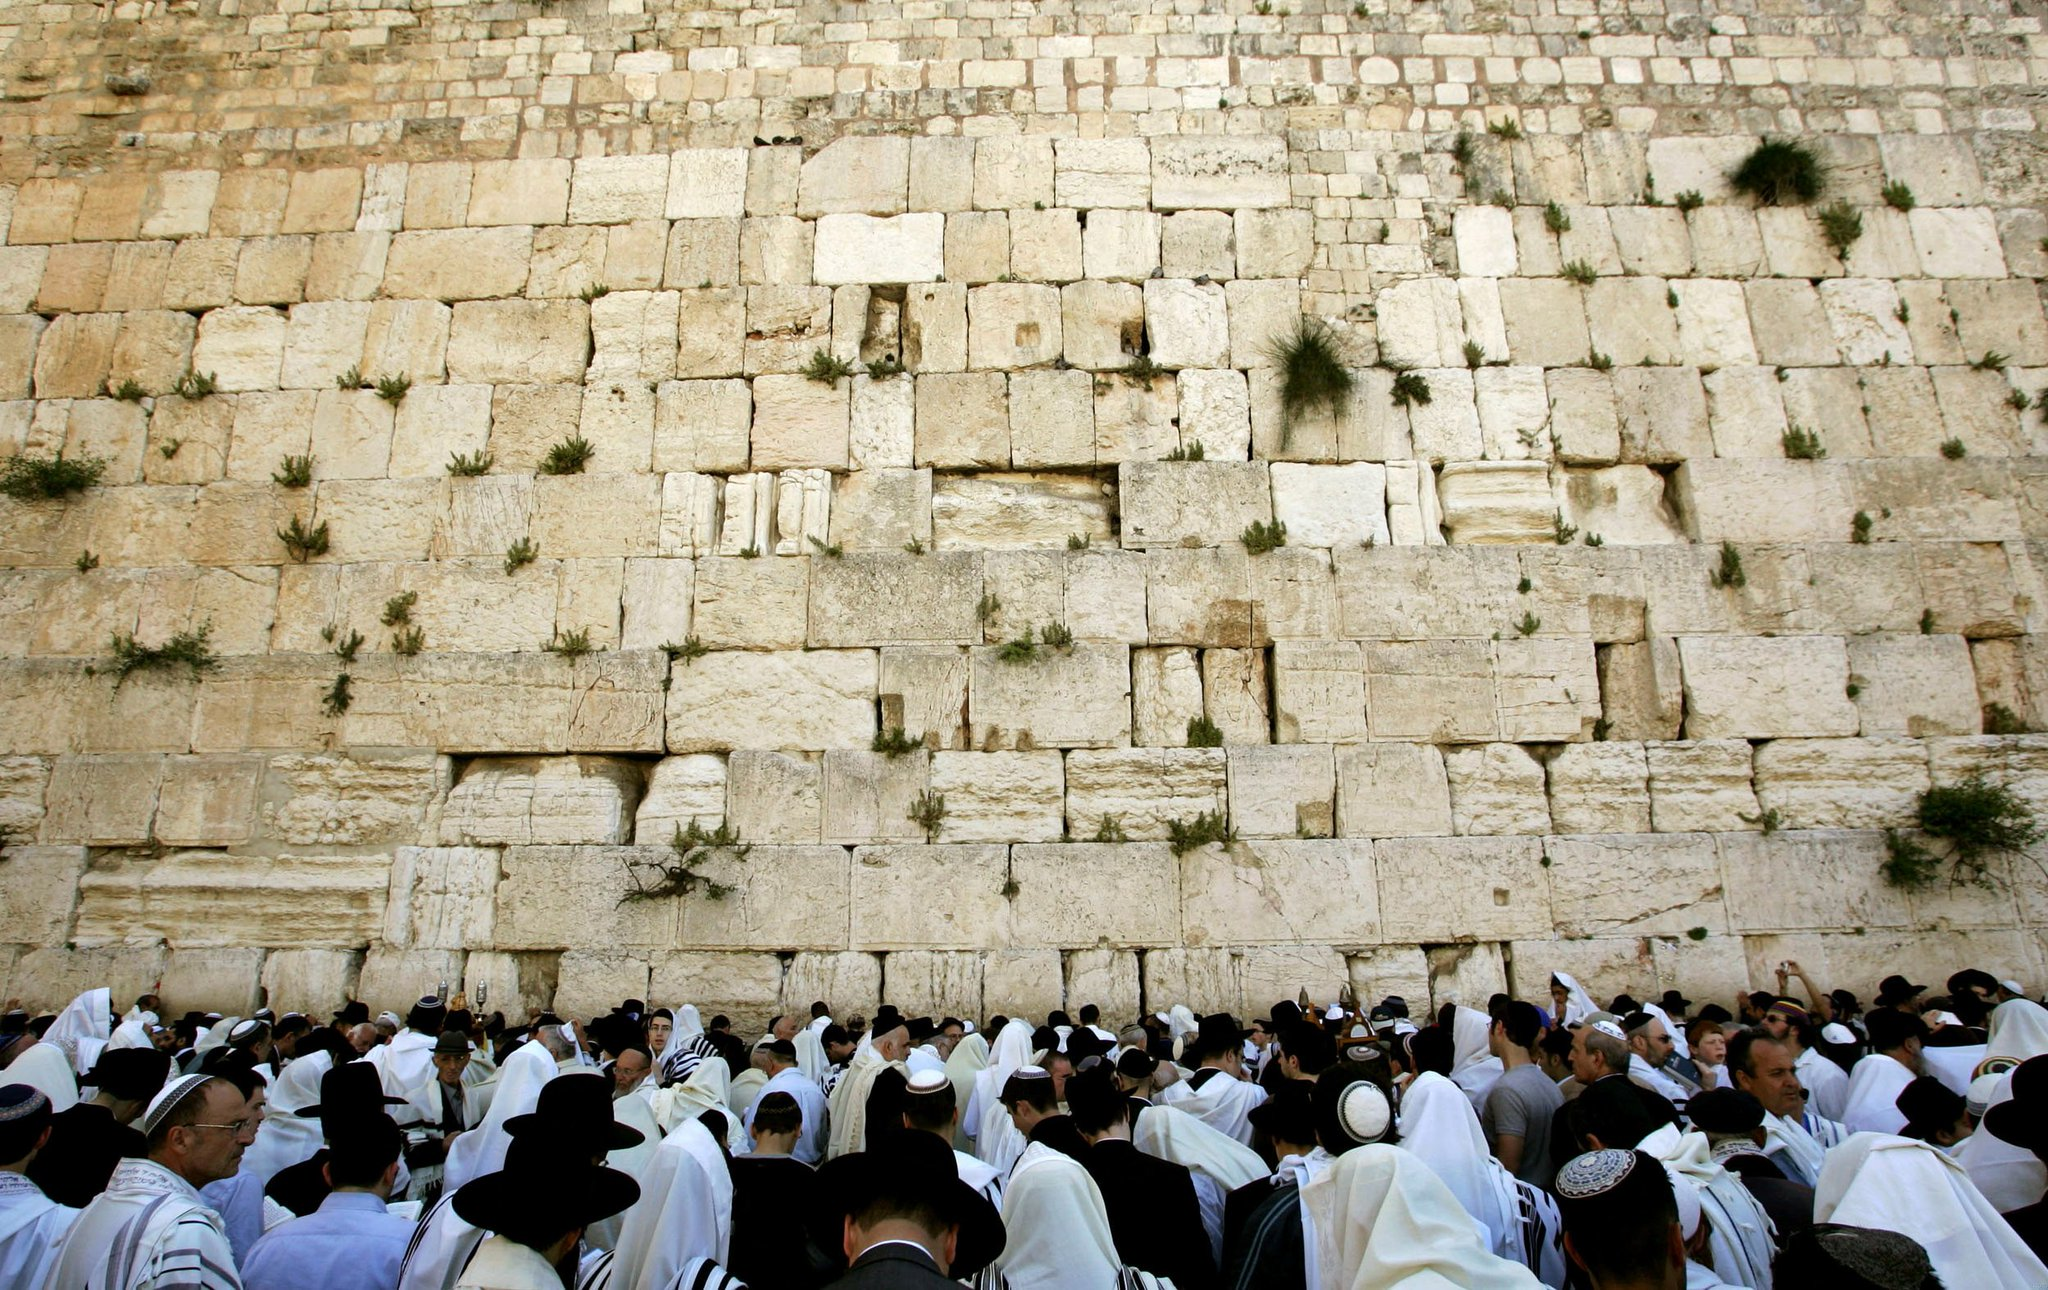 The Kotel - to be renamed as the Muslim site Al Buraq according to UNESCO